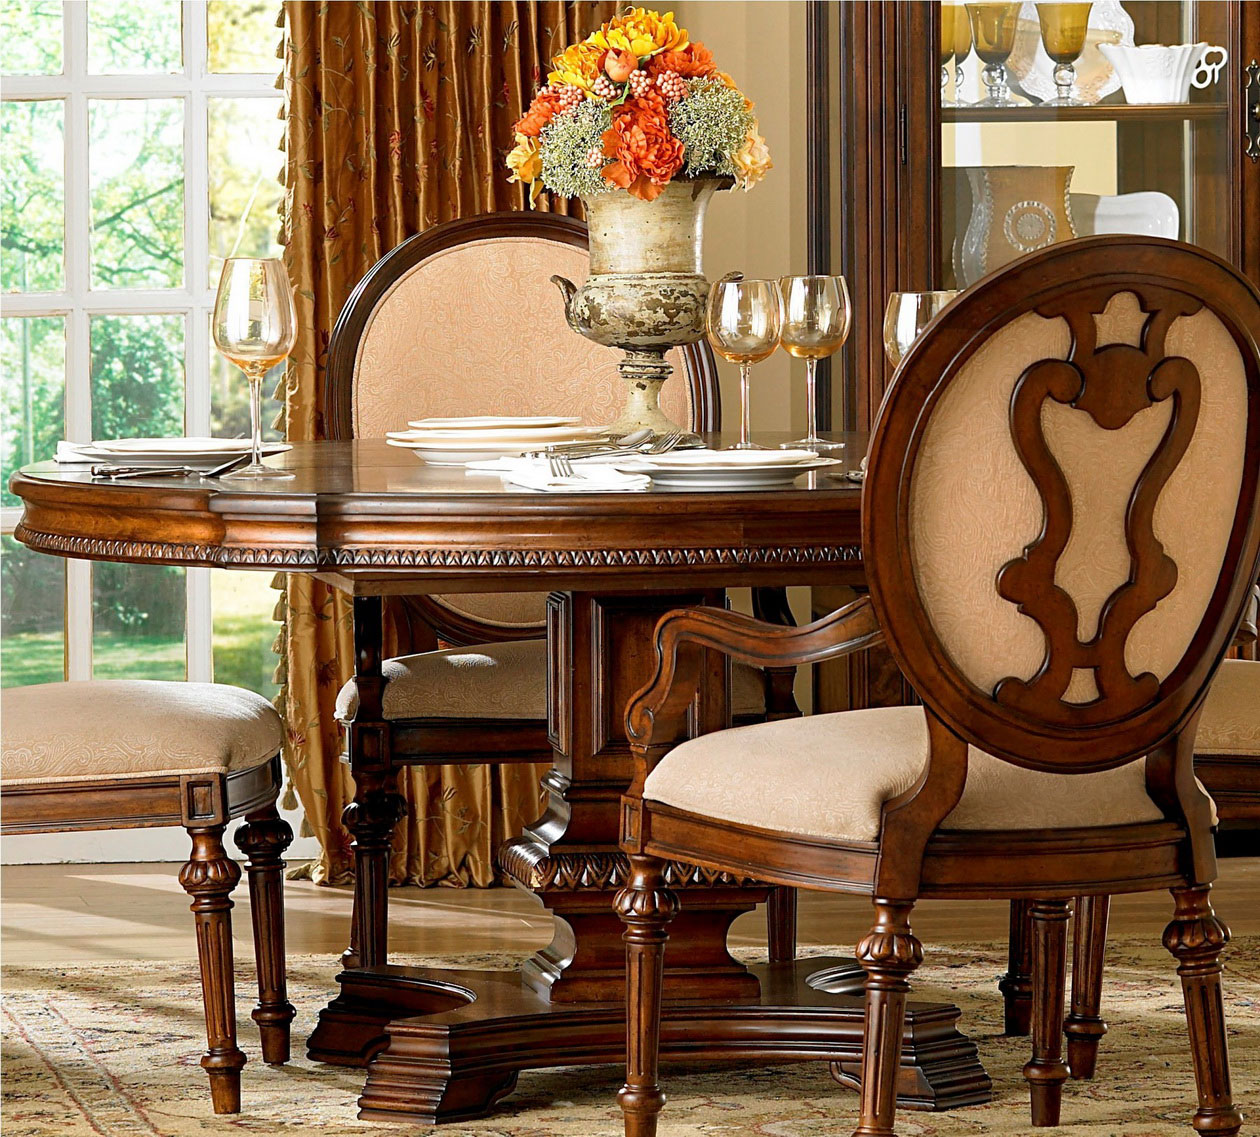 chair for dining table rubbermaid shower lavish classic designs as attractive focal point with timeless class | ideas 4 homes